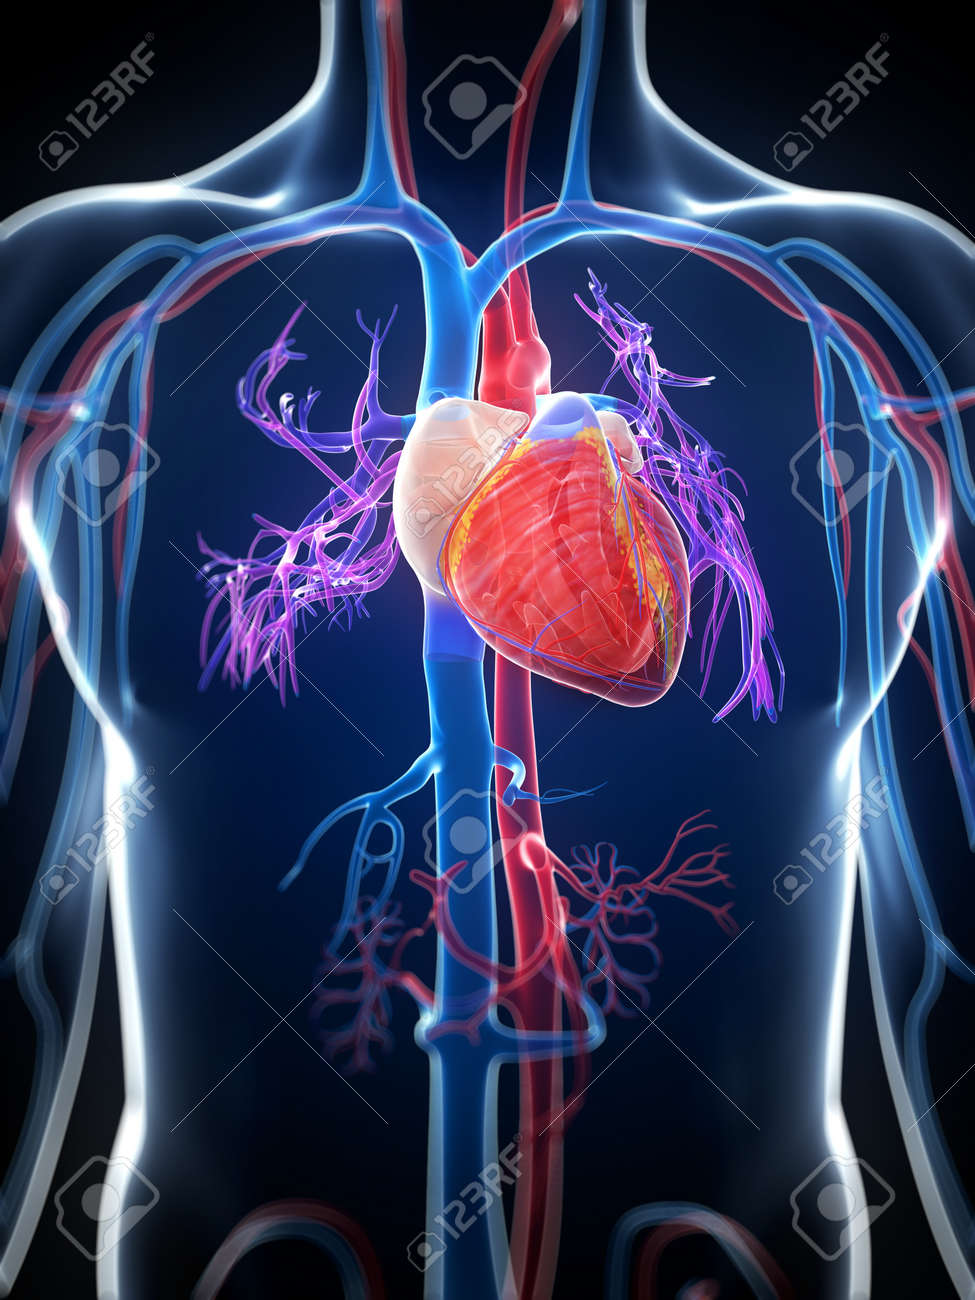 Image result for images of the human heart